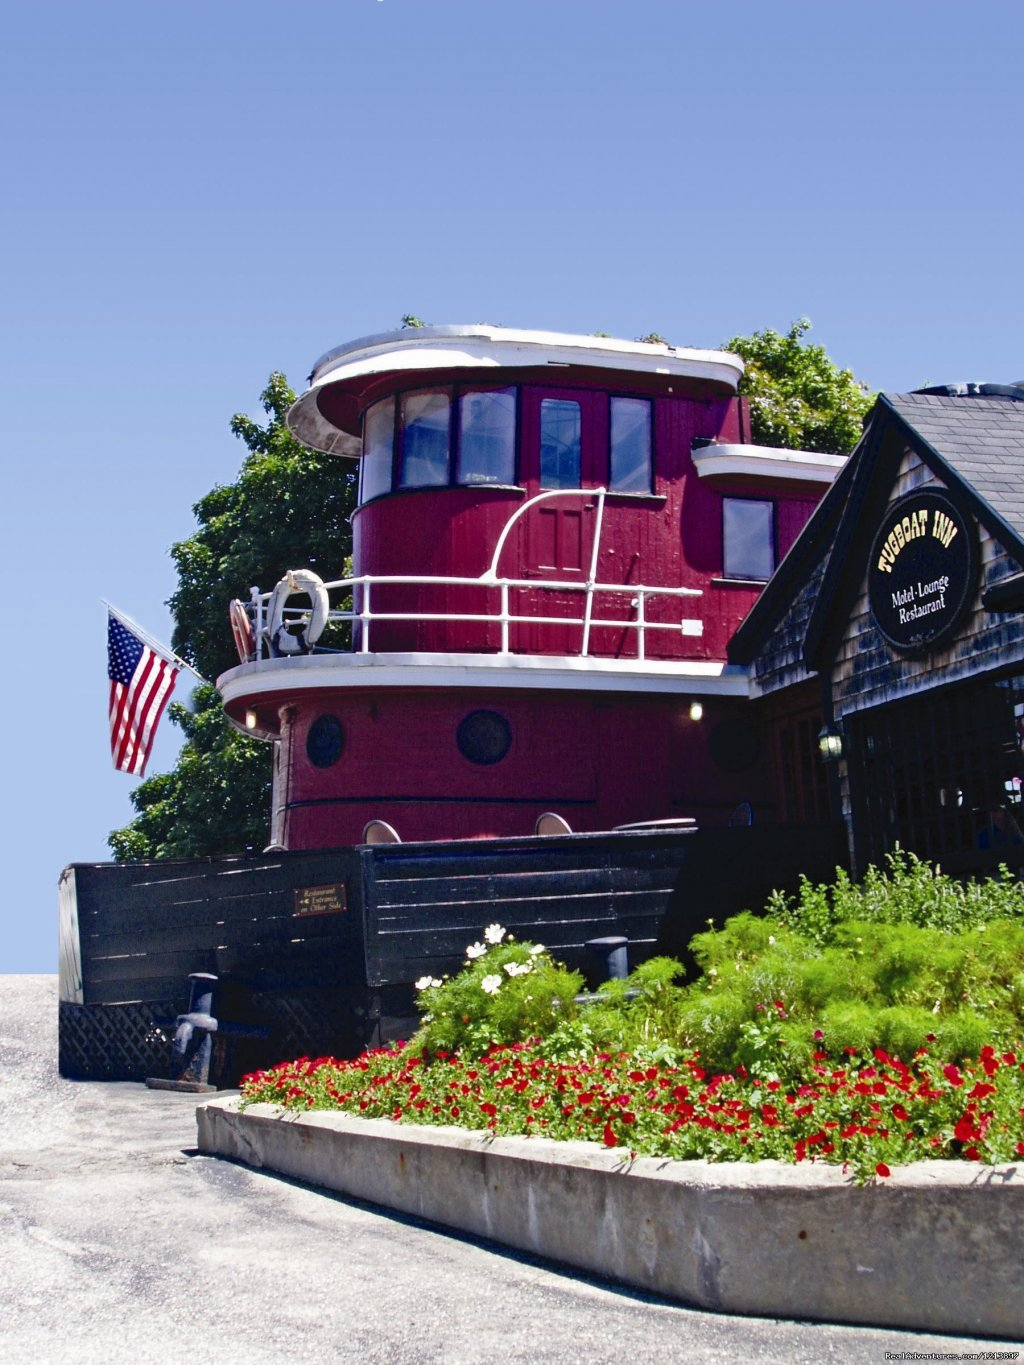 Tugboat Inn Restaurant | Image #3/17 | Getaway to the Coast at the Tugboat Inn